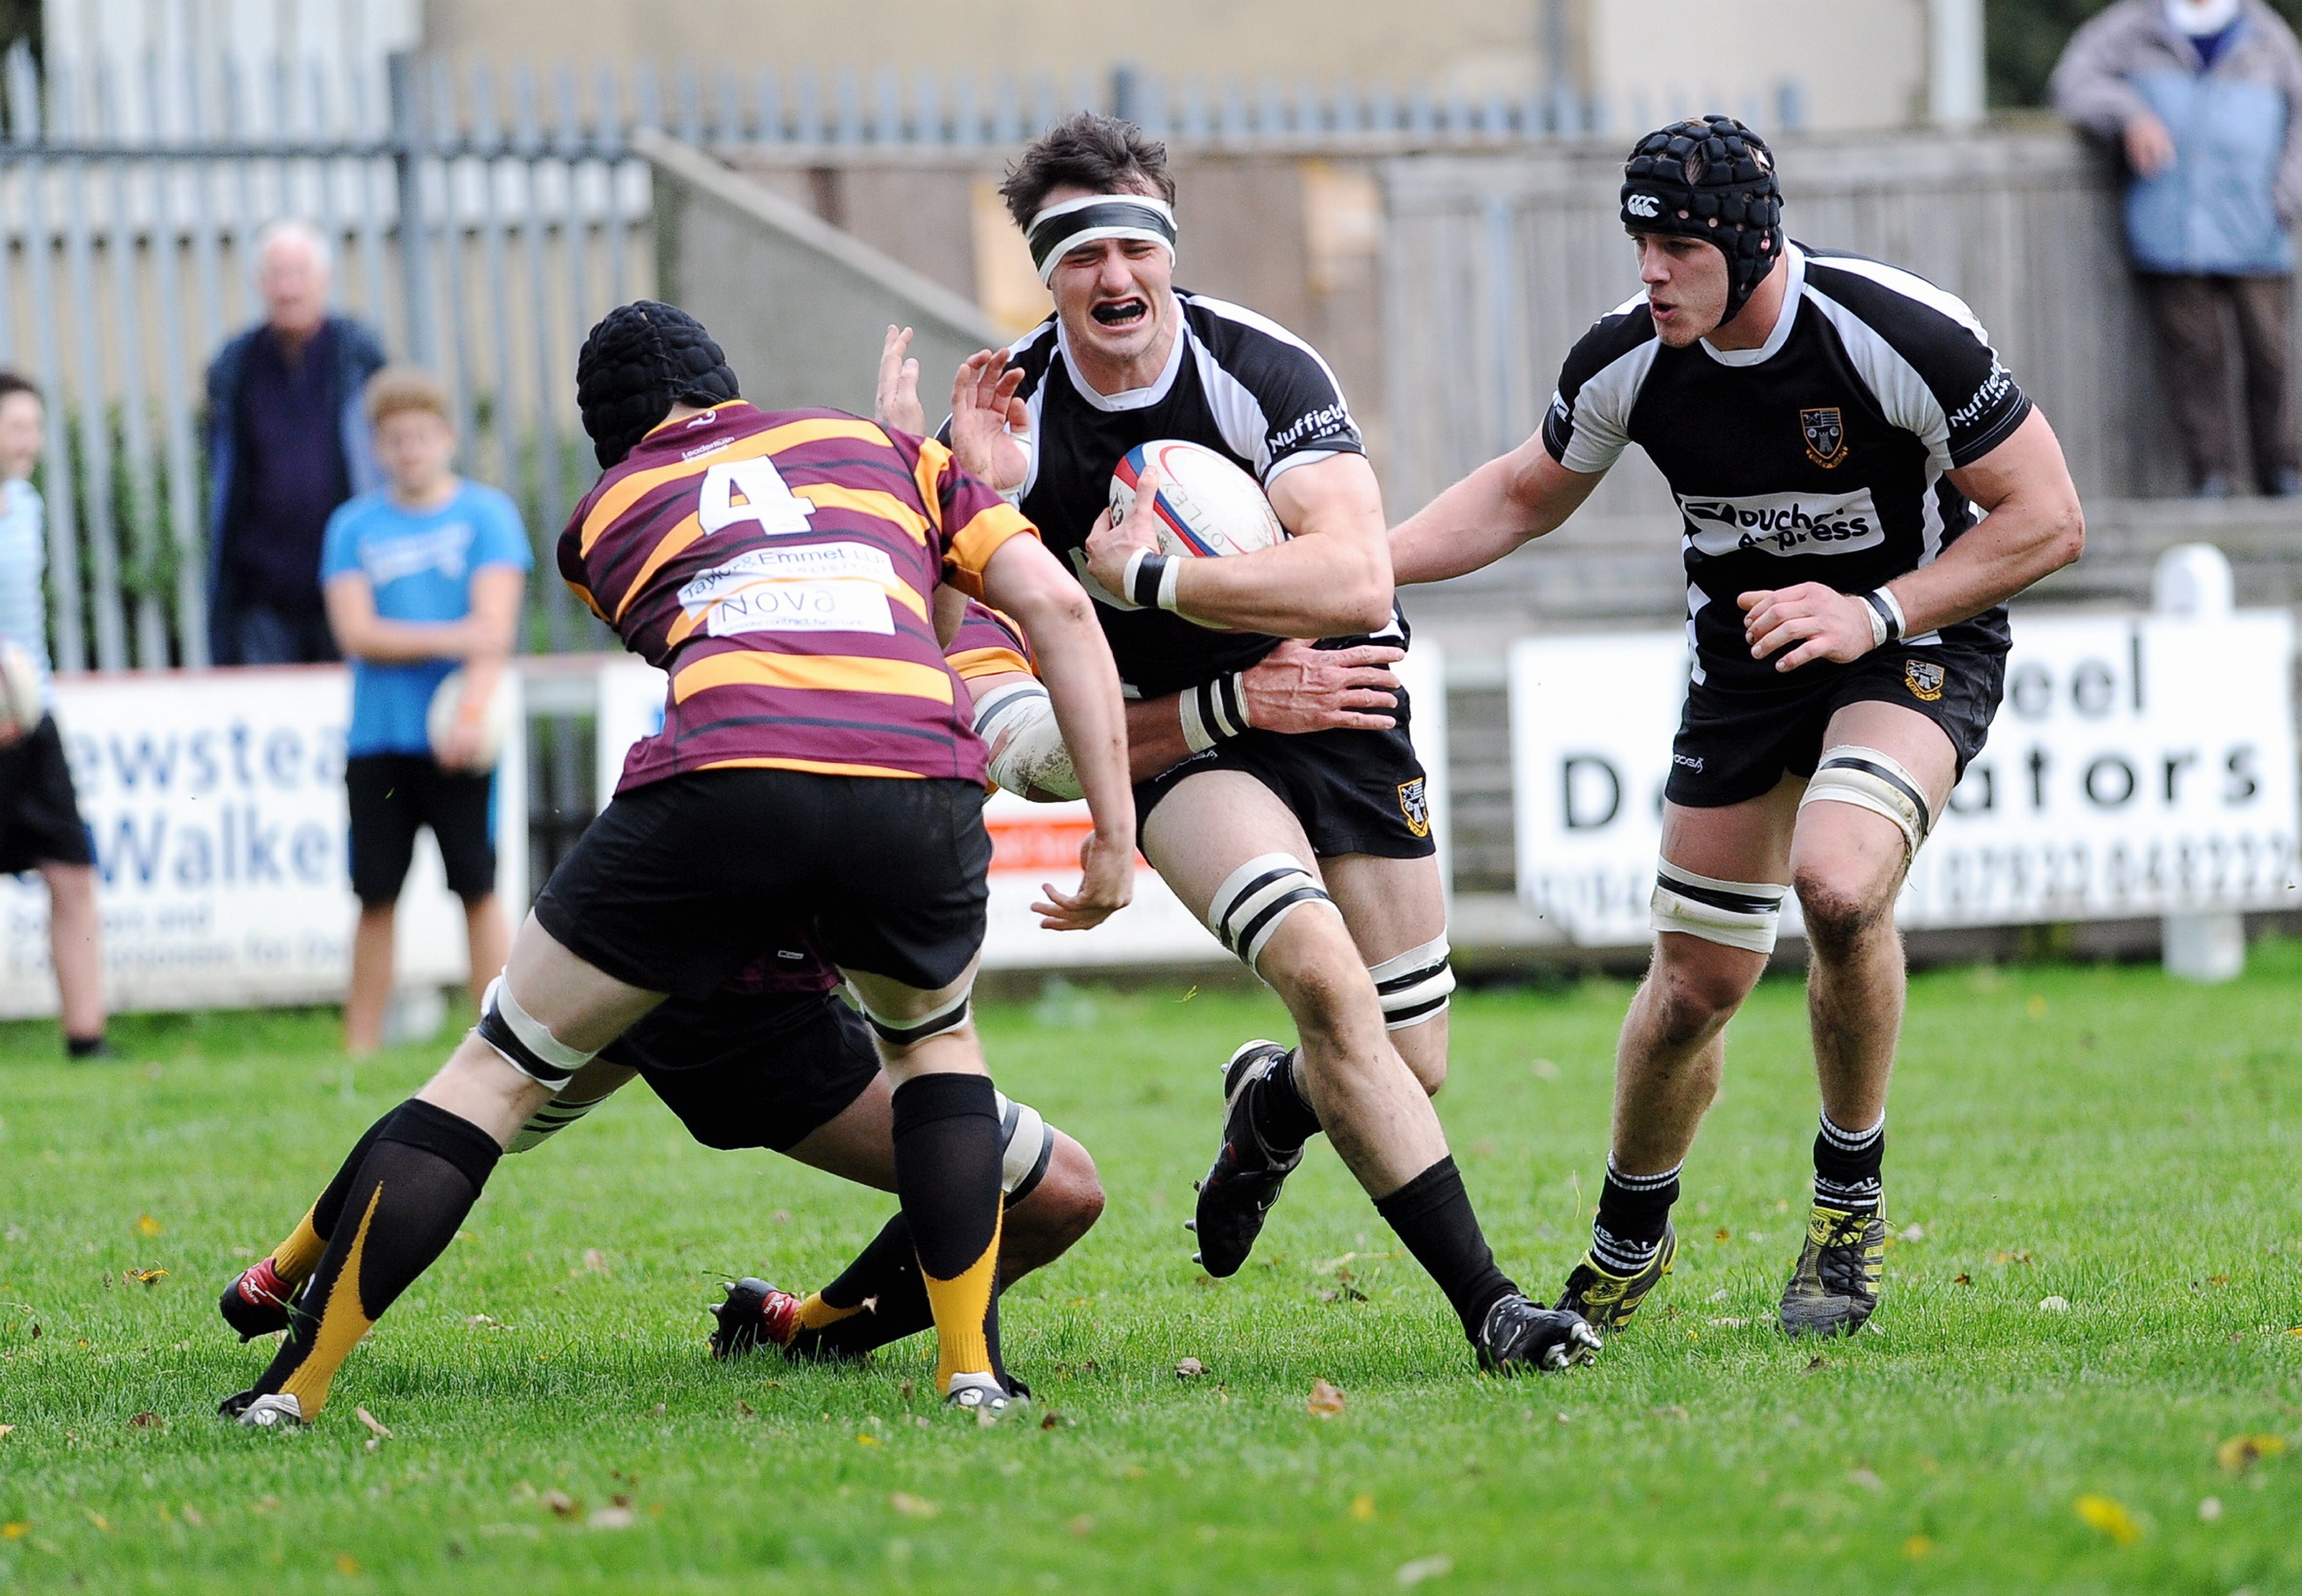 Dan Temm shows his determination while playing in Otley colours